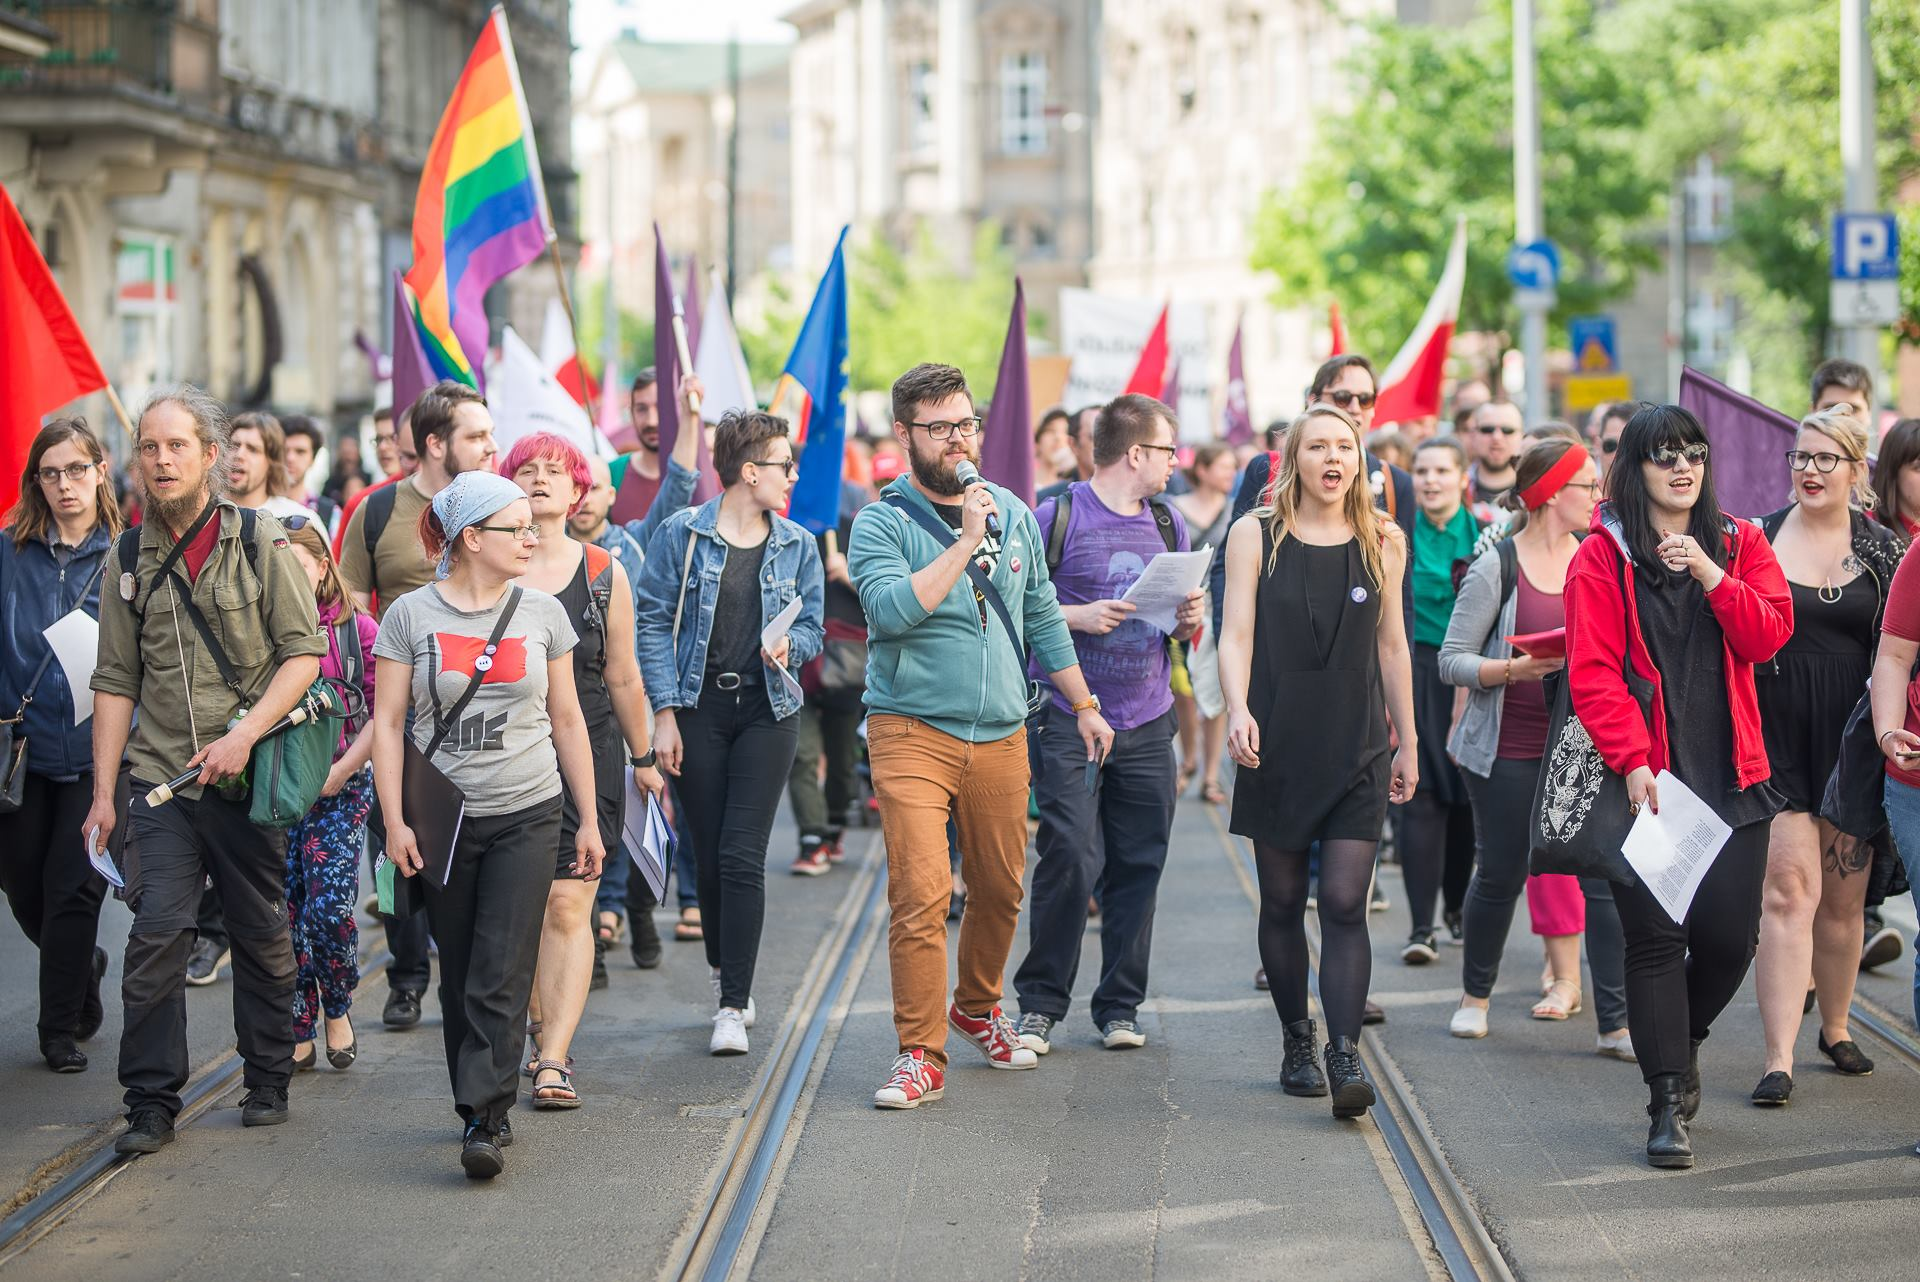 Pro-labor activists march in Poznań on Labor Day 2018 (phot. Razem Poznań)